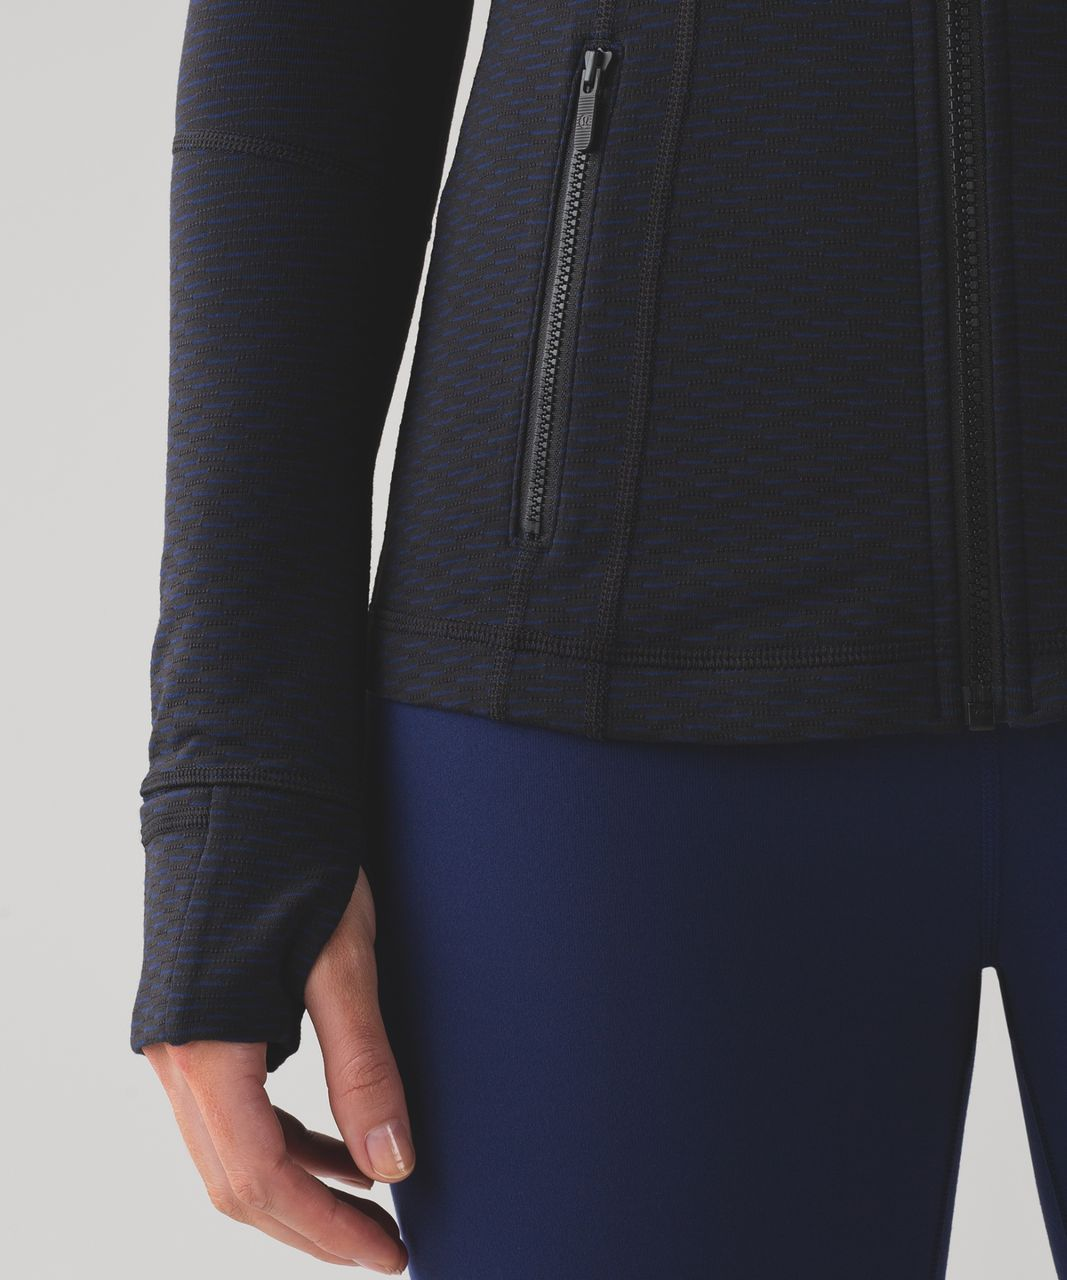 Lululemon Define Jacket - Score Jacquard Black Hero Blue